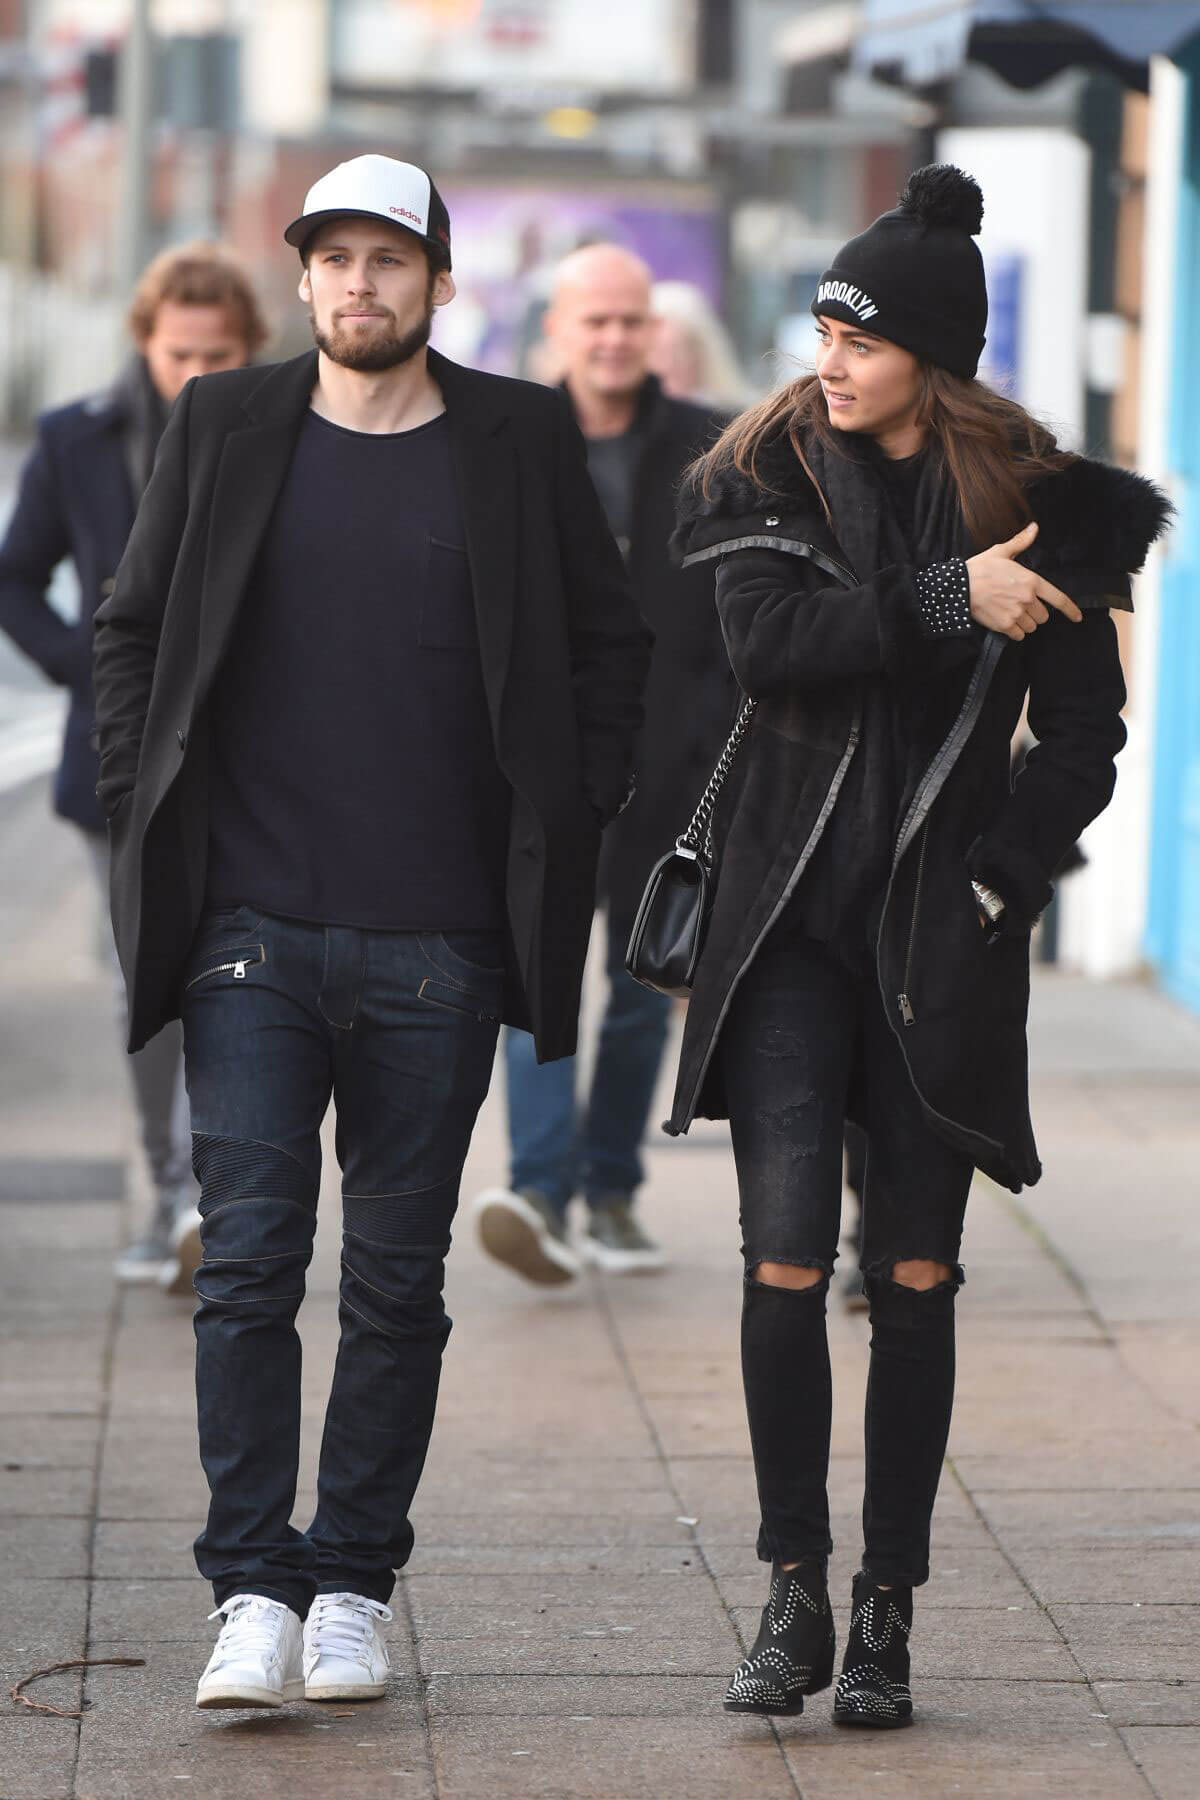 Candy-Rae Fleur Out for Lunch in Cheshire